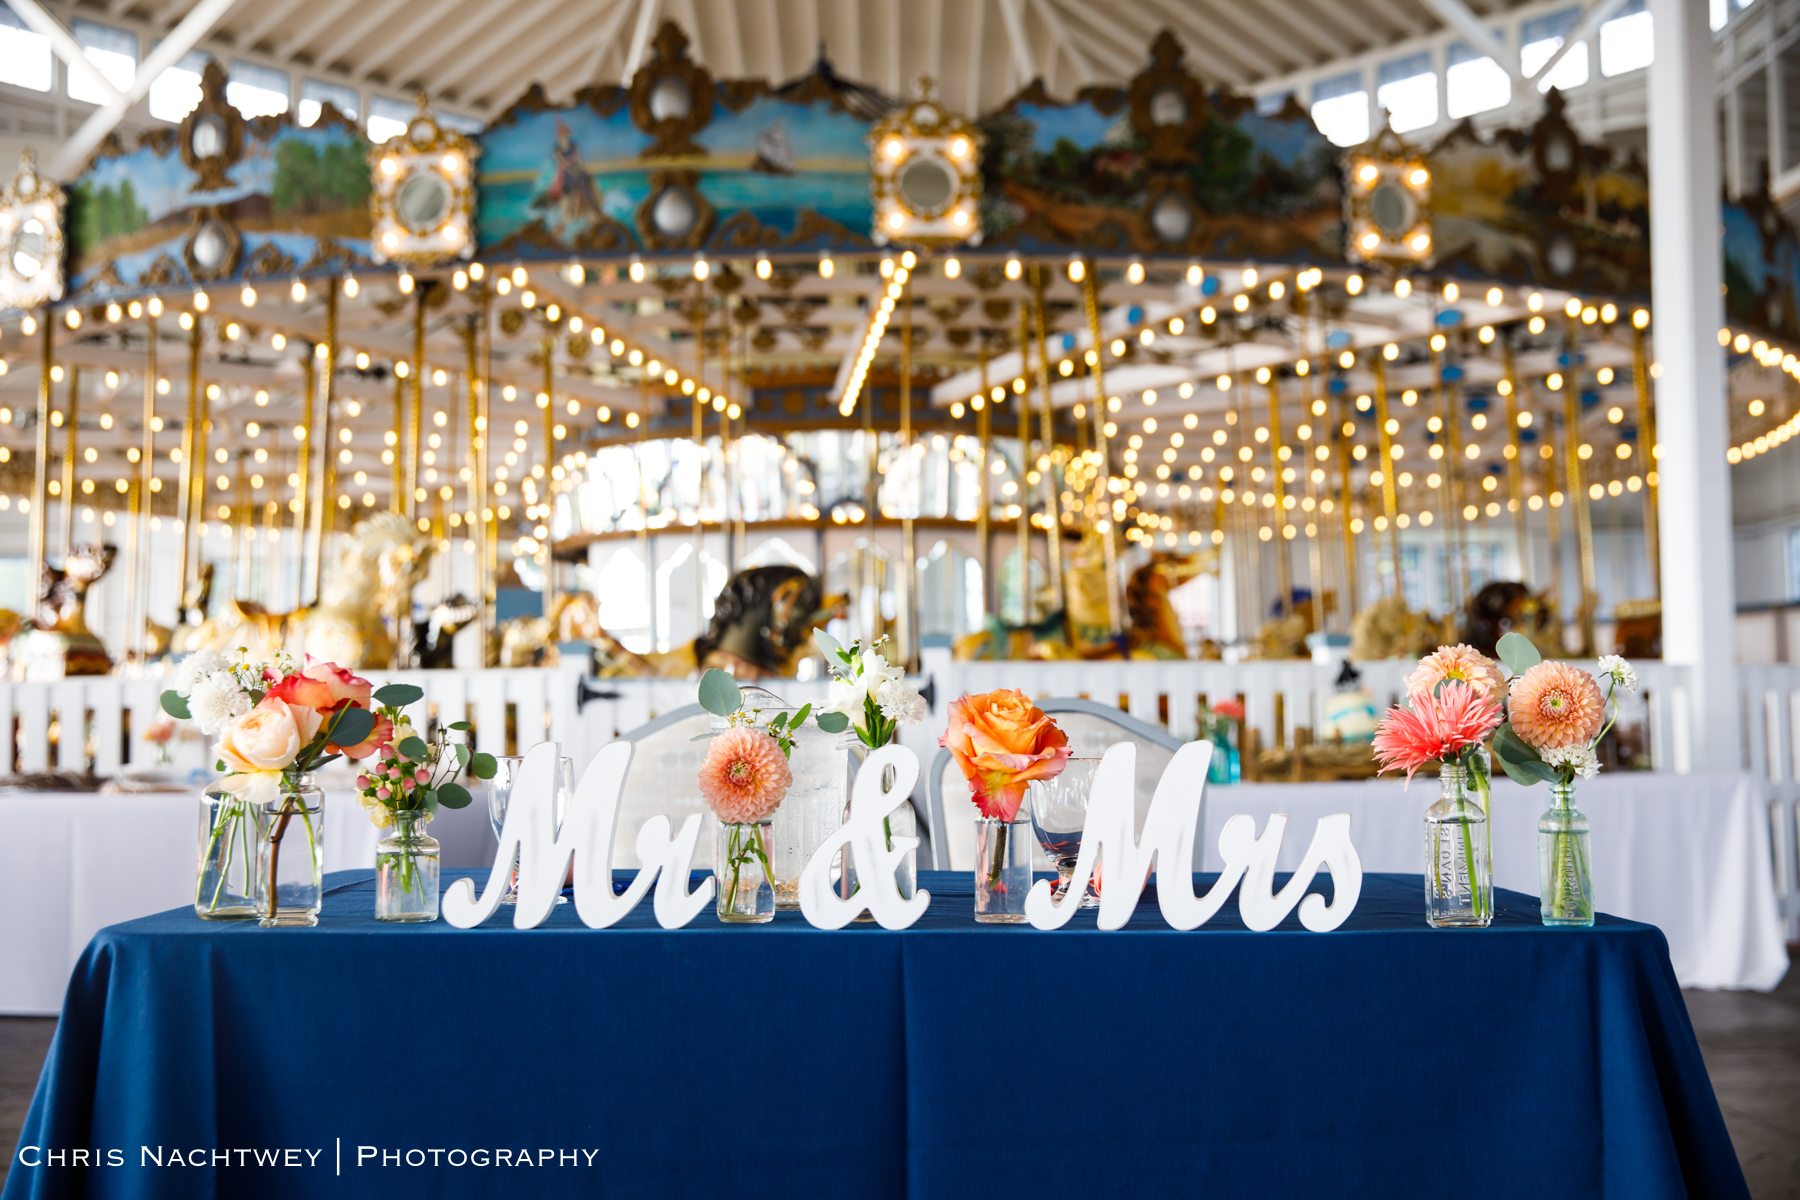 photos-wedding-lighthouse-point-park-carousel-new-haven-chris-nachtwey-photography-2019-42.jpg